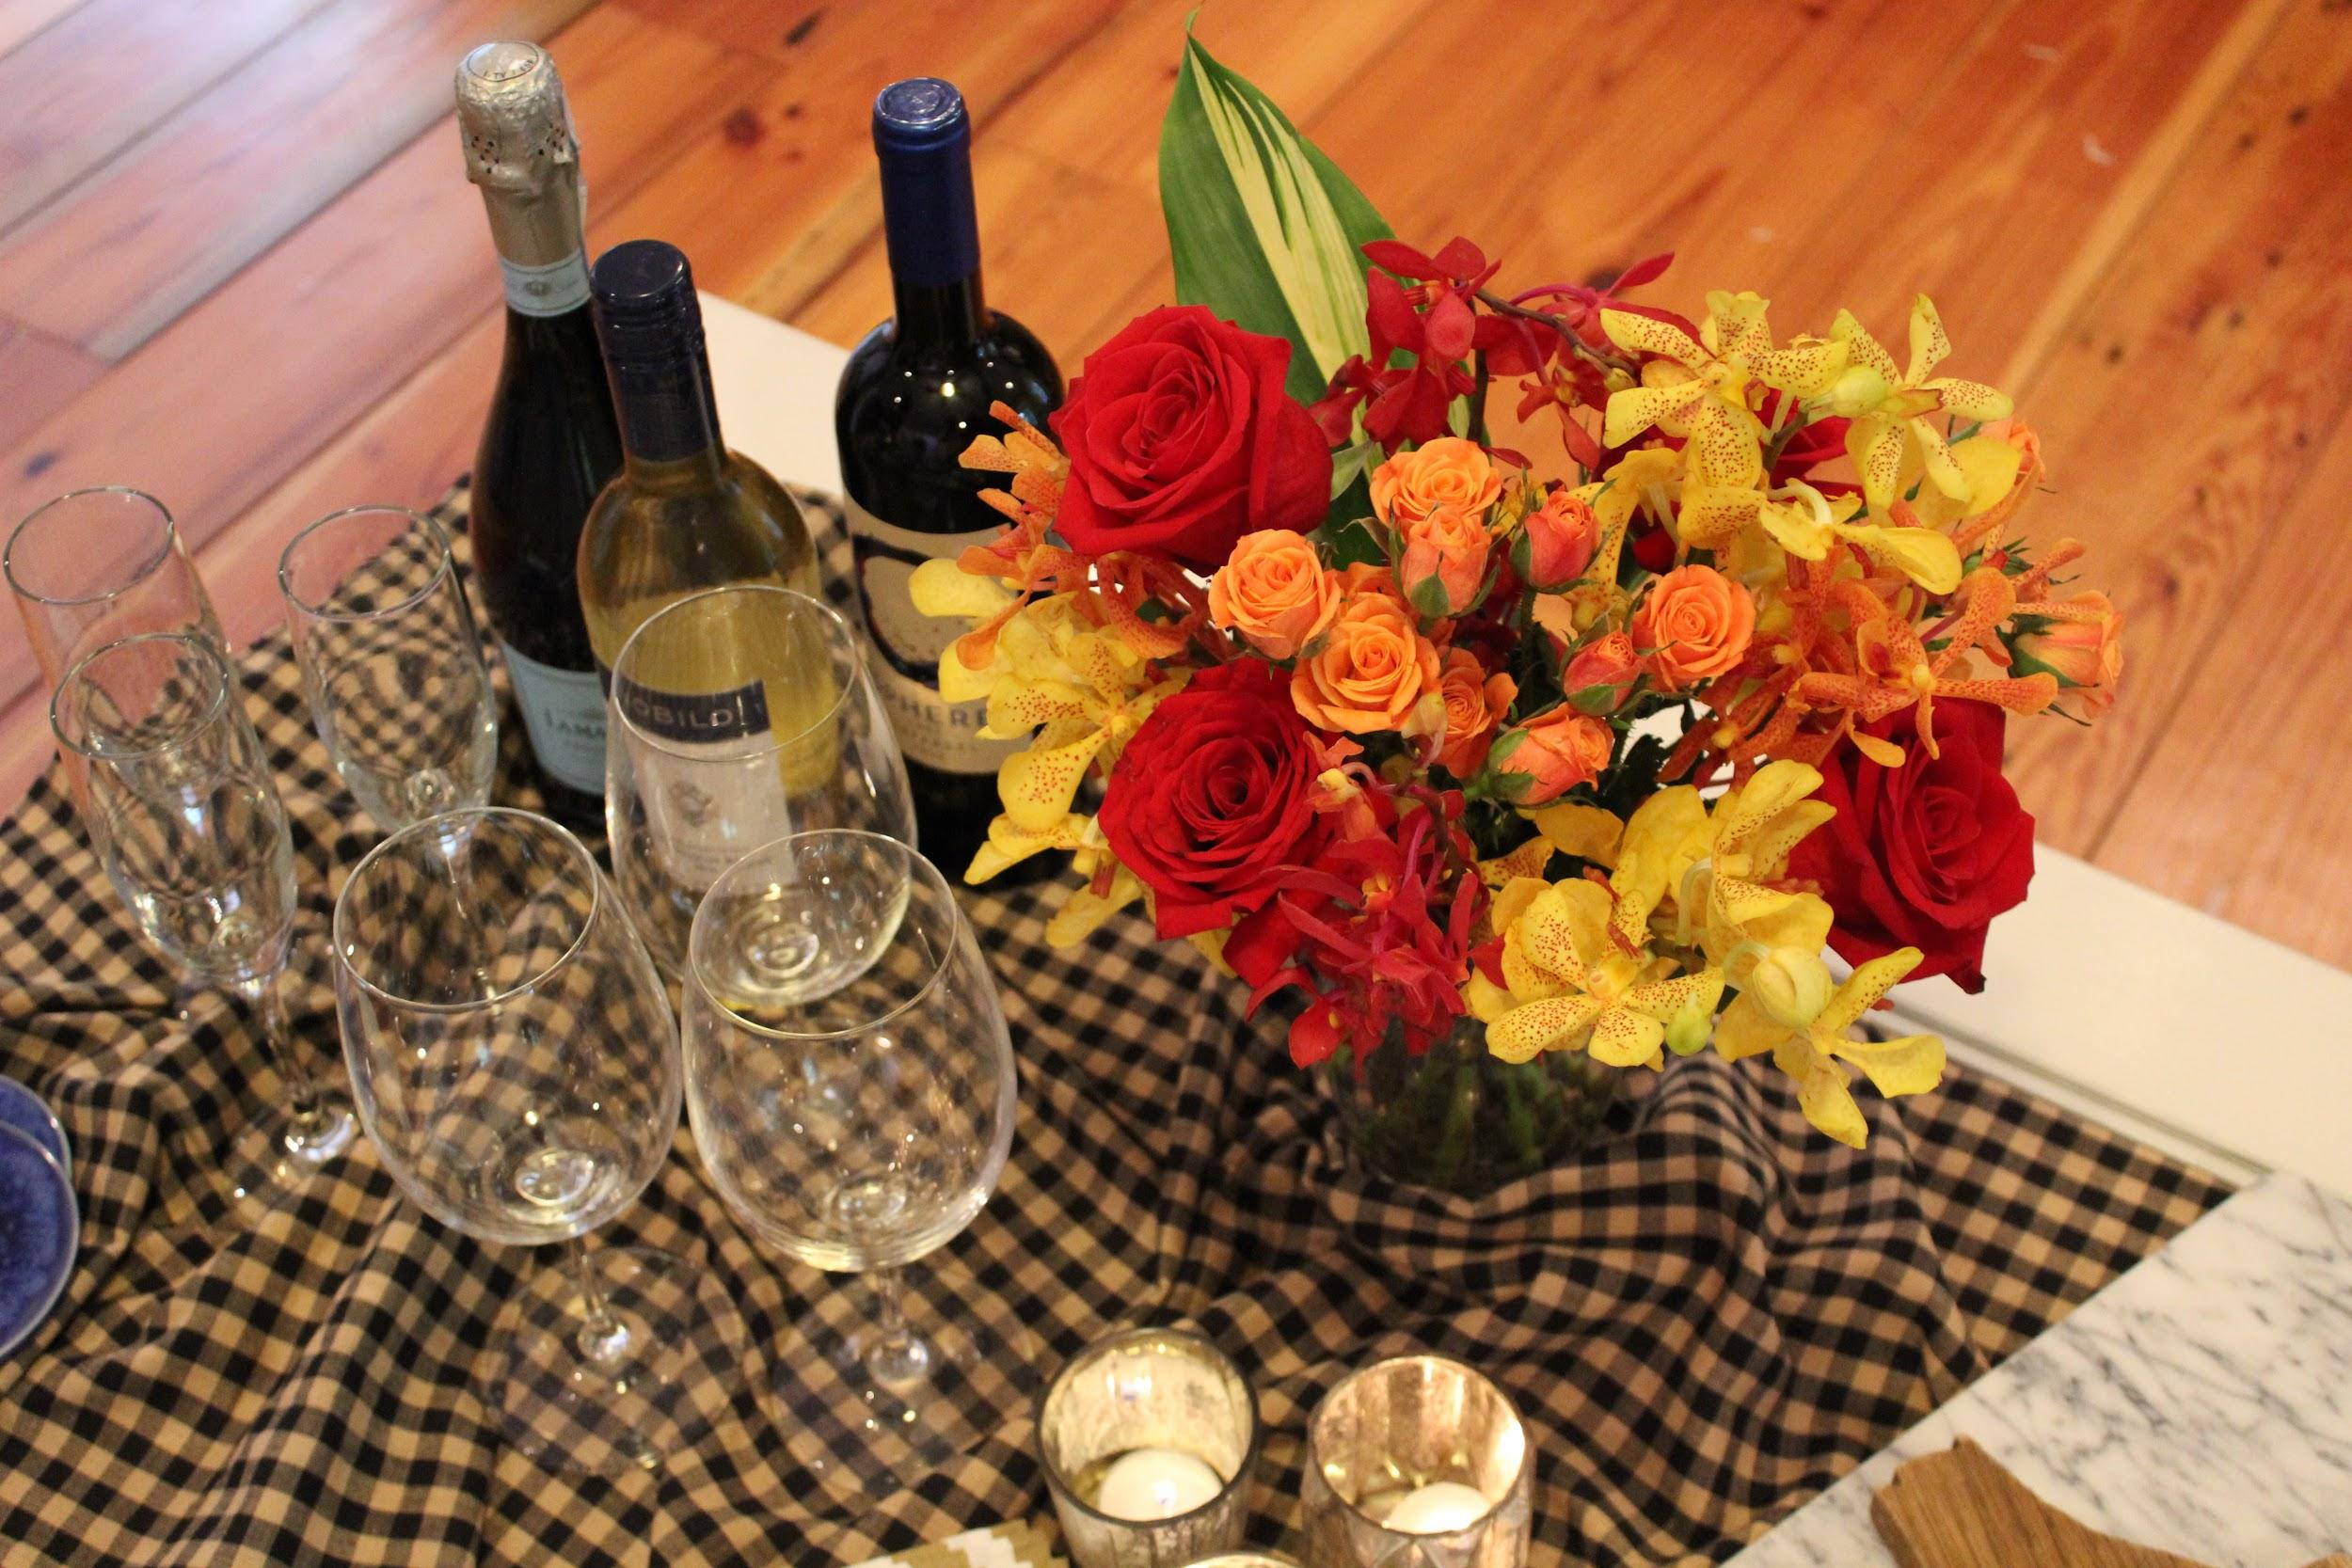 bouquet of flowers with wine and glasses